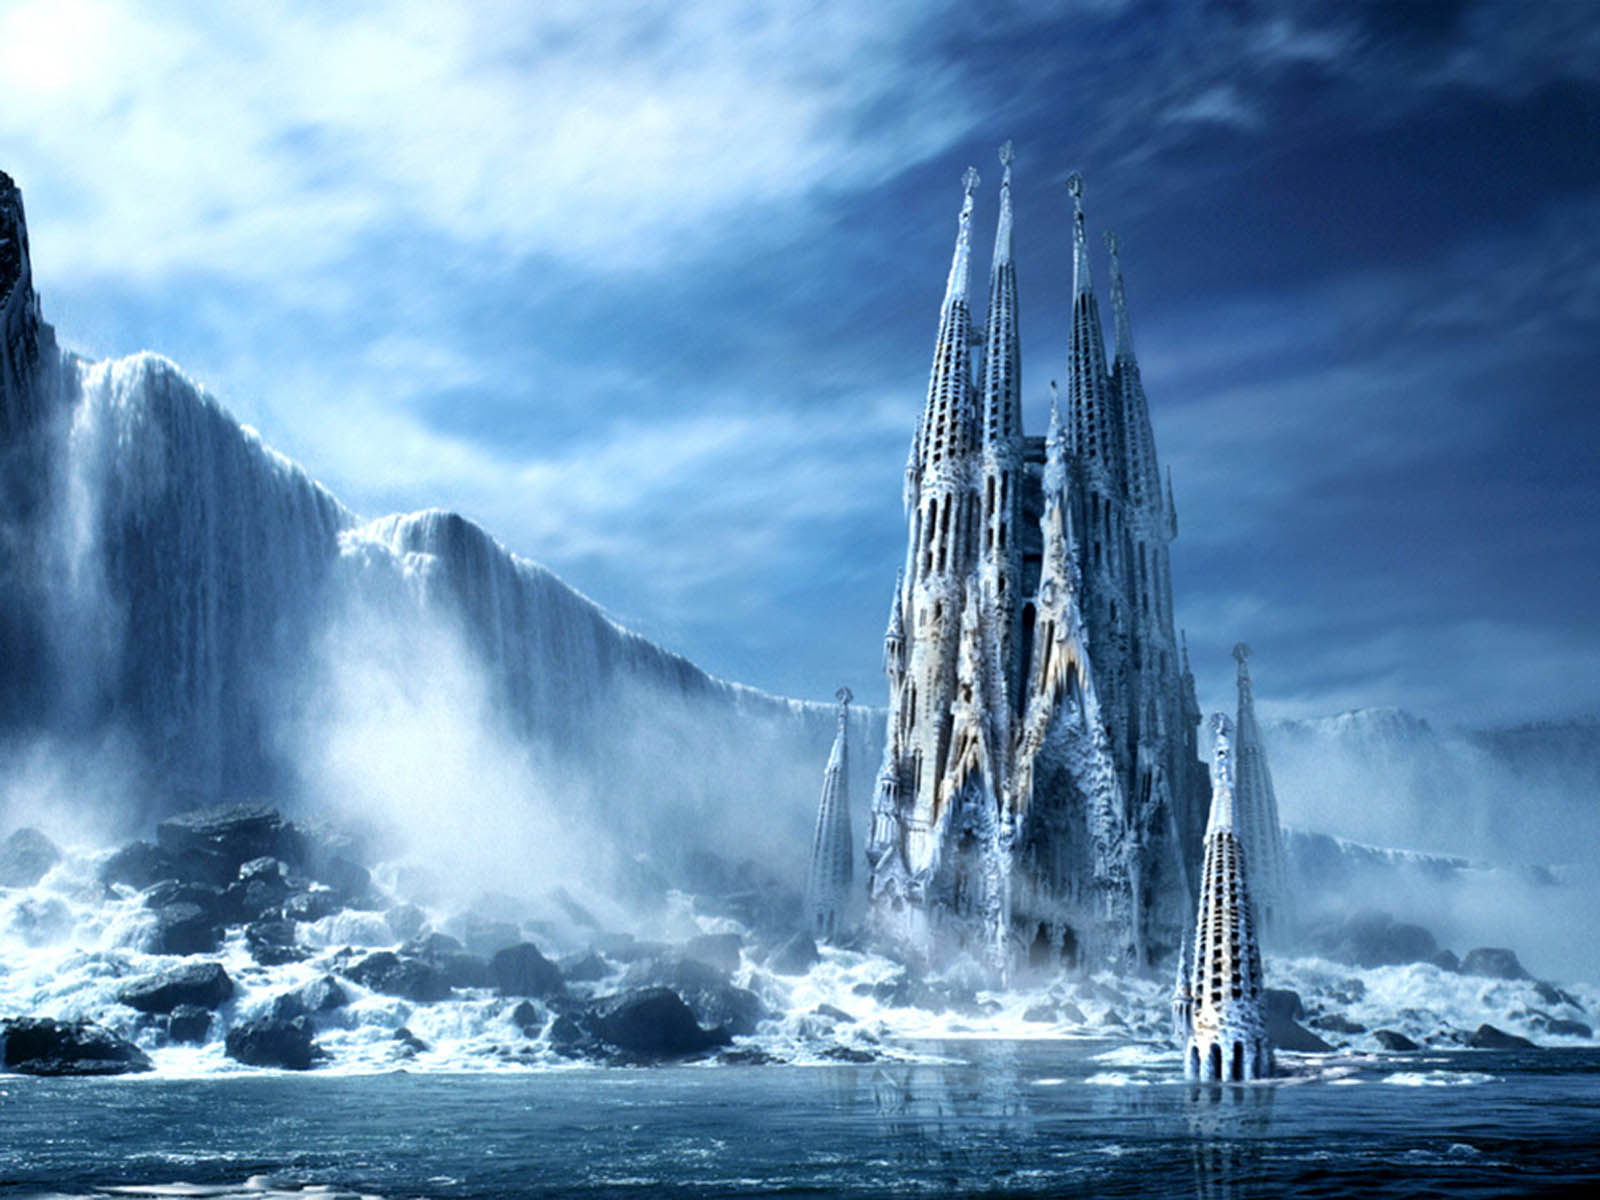 Tag 3D Castle Wallpapers Backgrounds Photos Picturesand Images 1600x1200